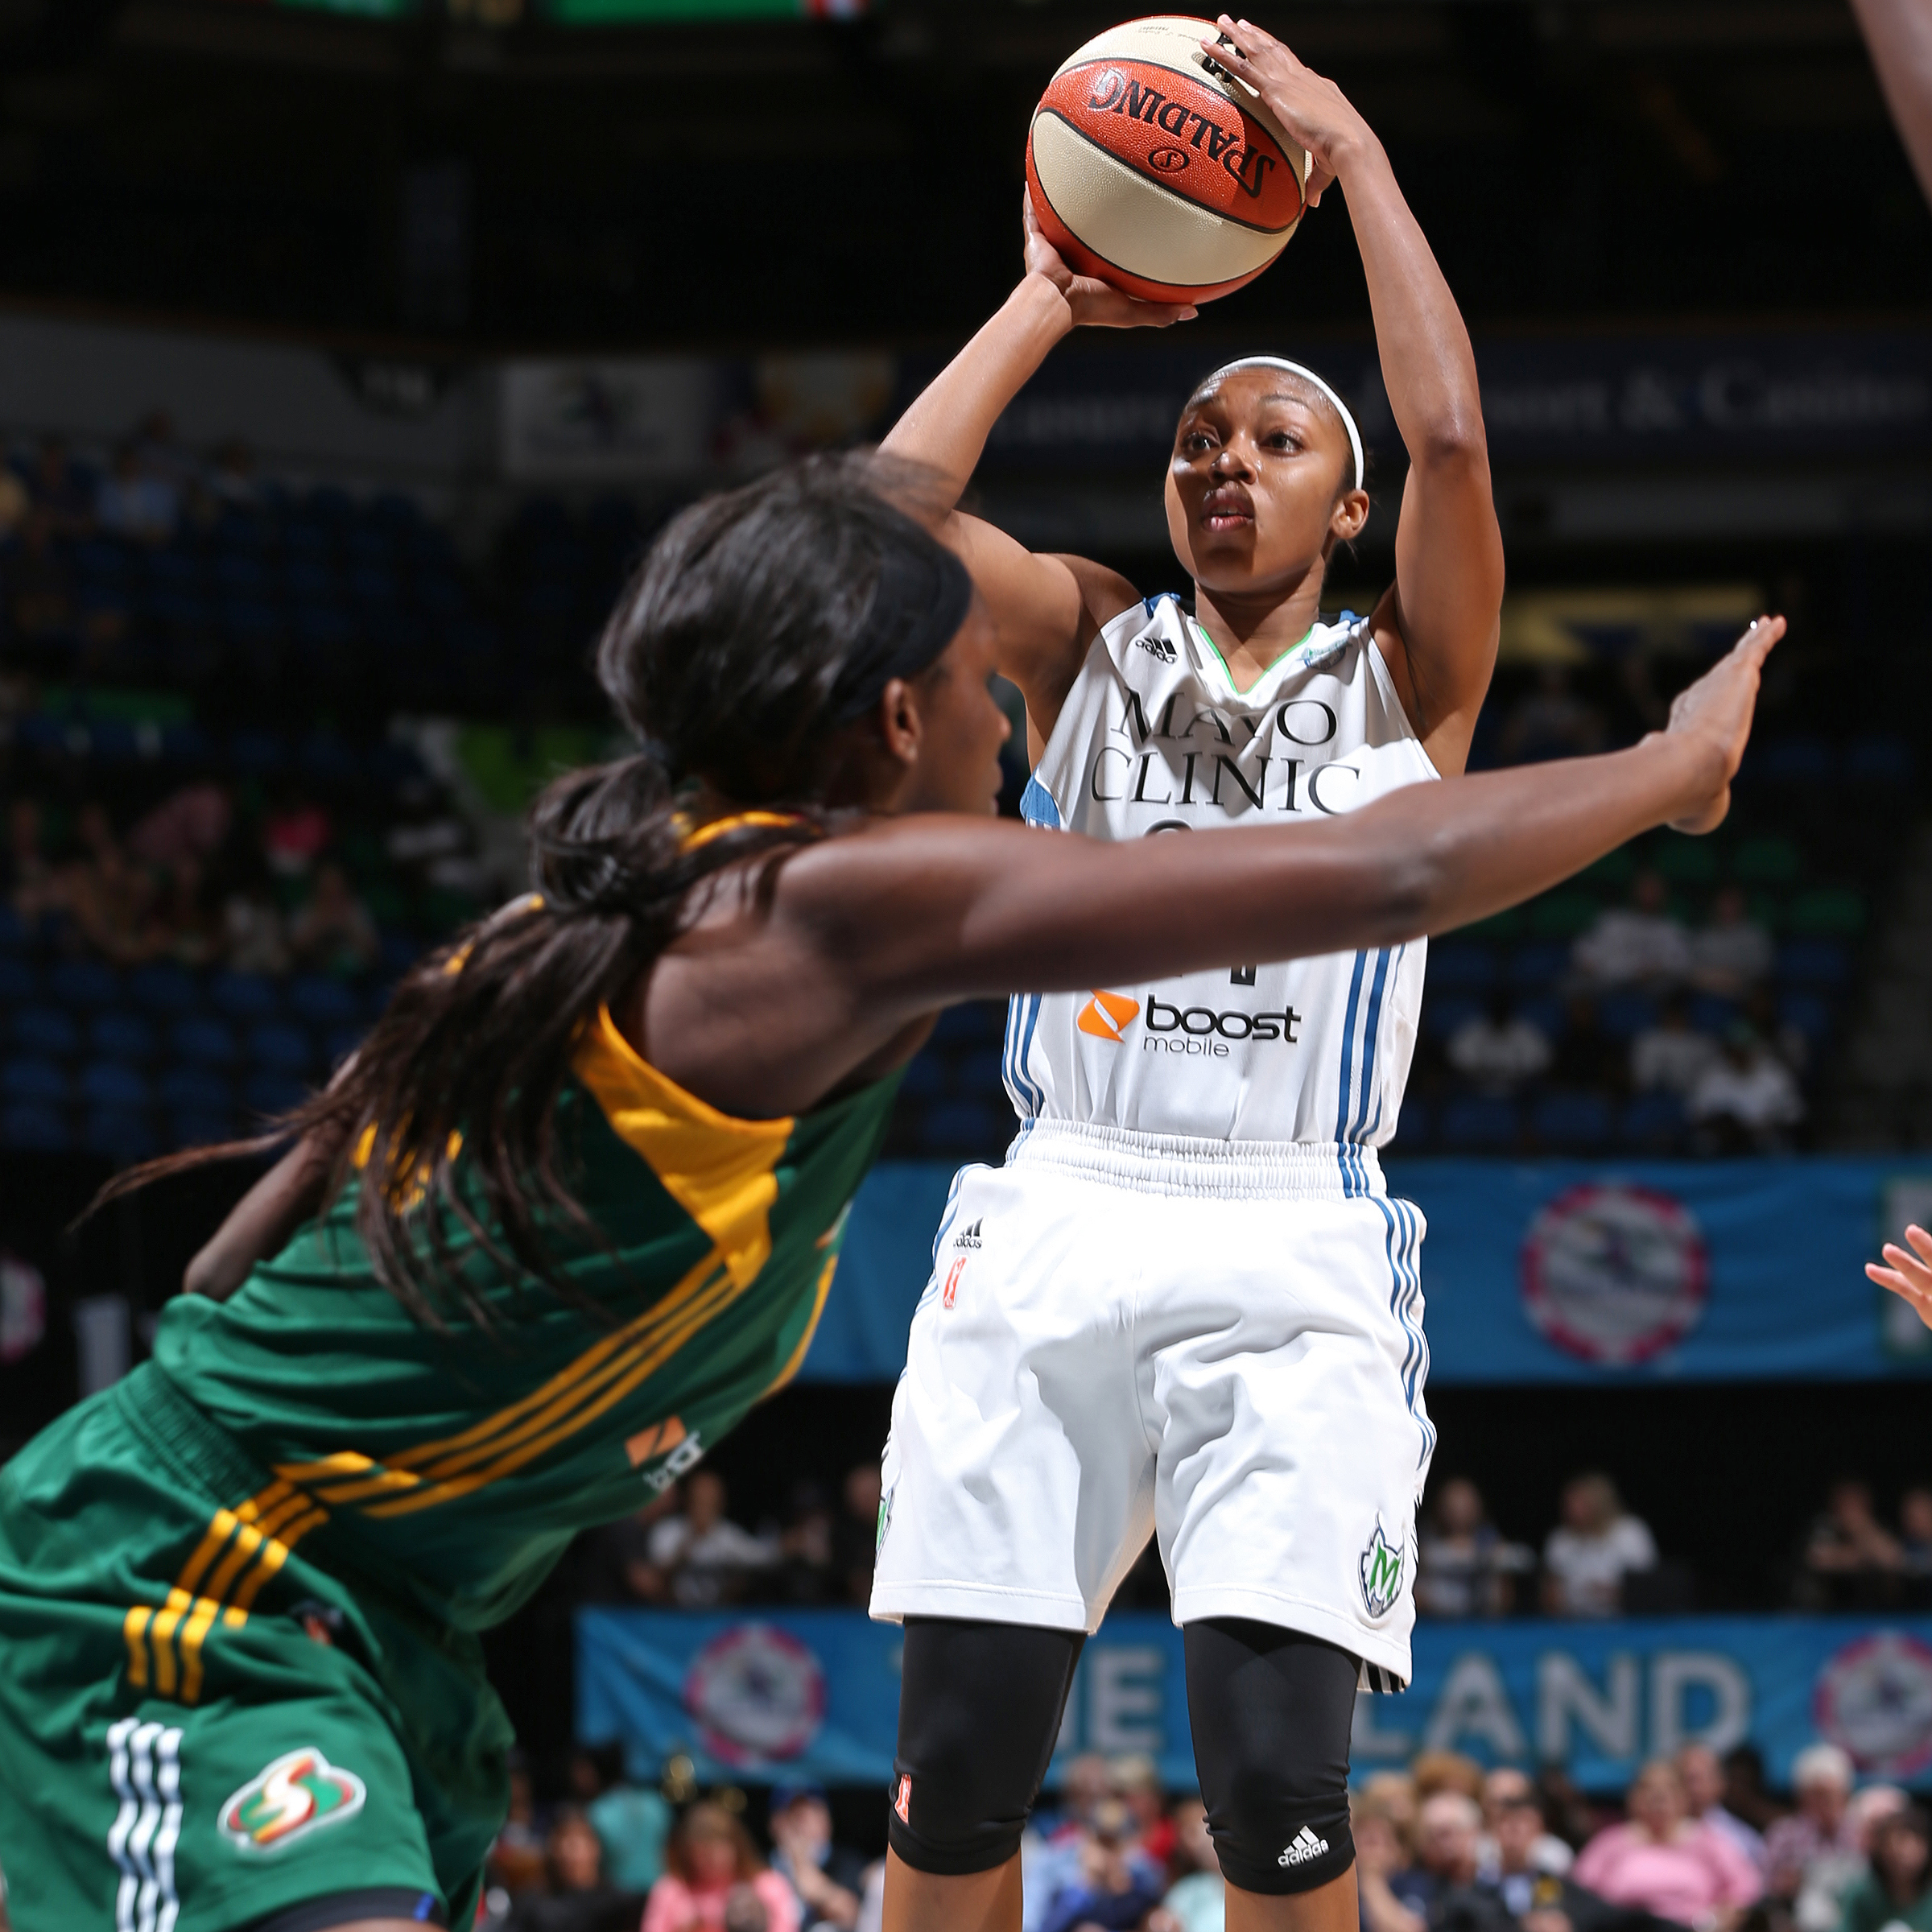 Lynx guard Renee Montgomery had an overall quiet night against Seattle, scoring just six points while adding two assists and one steal.